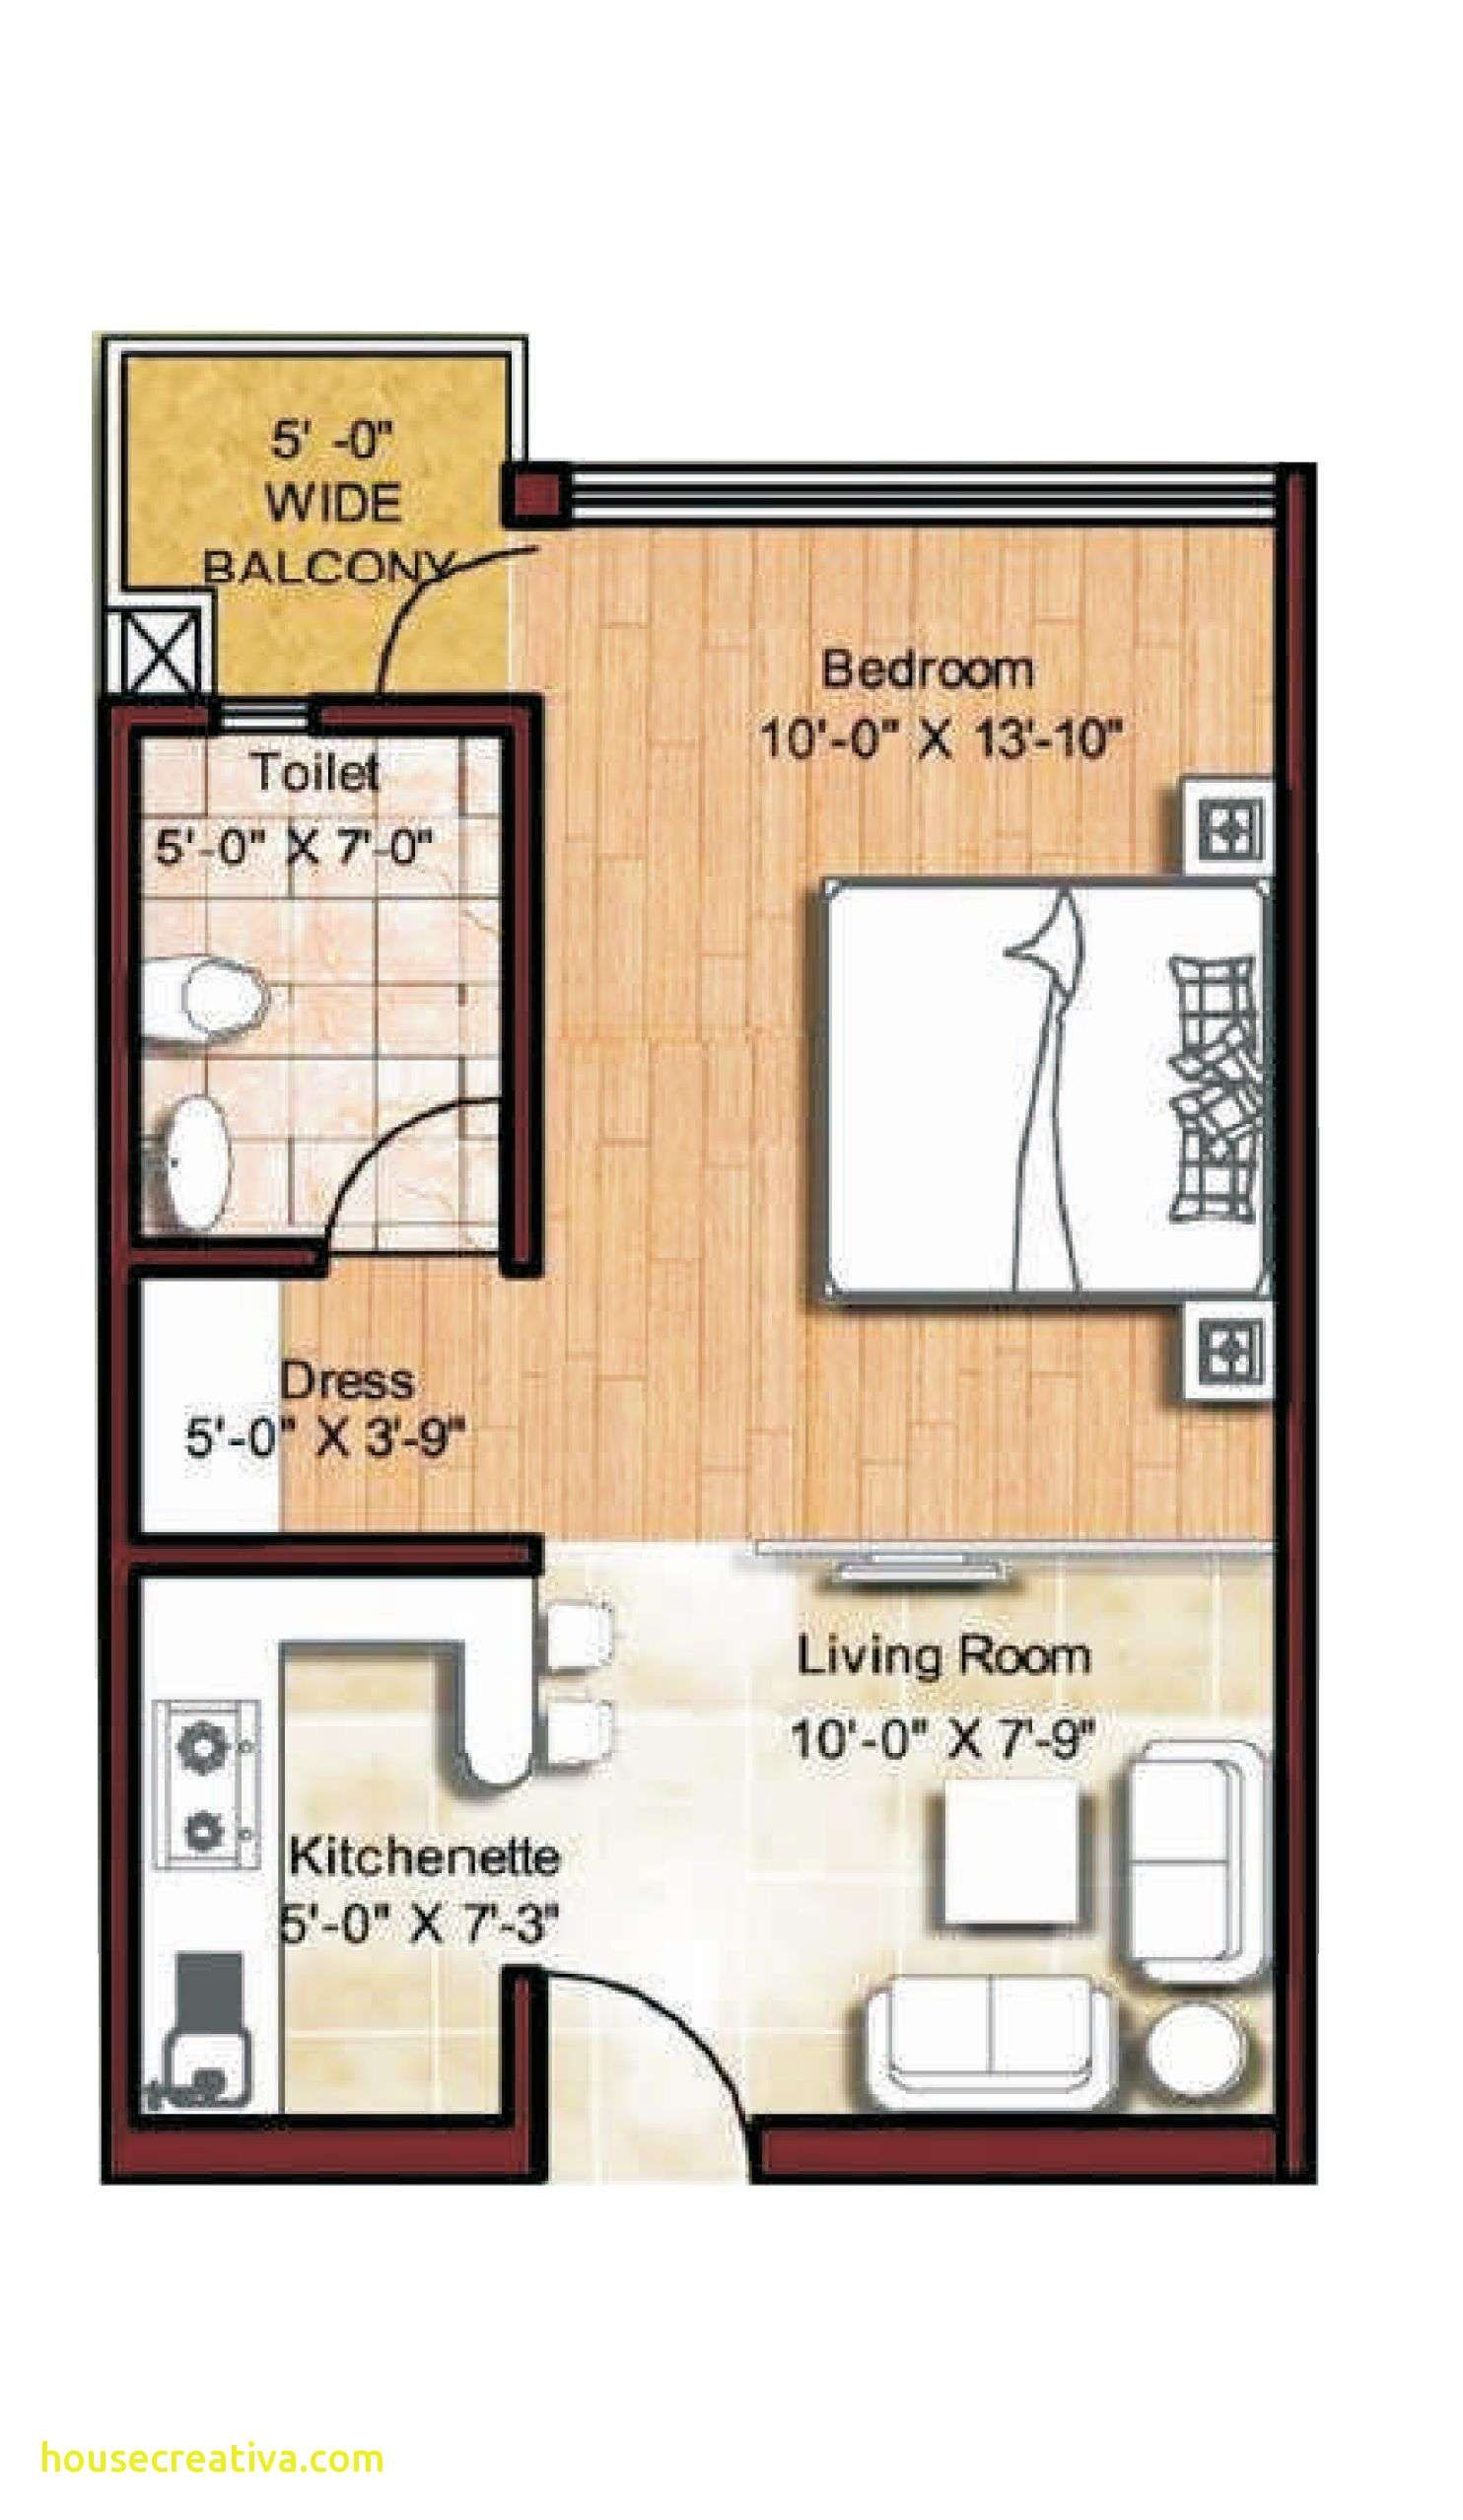 Fresh Small Built In Microwave Dimensions Homedecoration Homedecorations Homedecorat Studio Apartment Floor Plans Studio Floor Plans Apartment Floor Plans